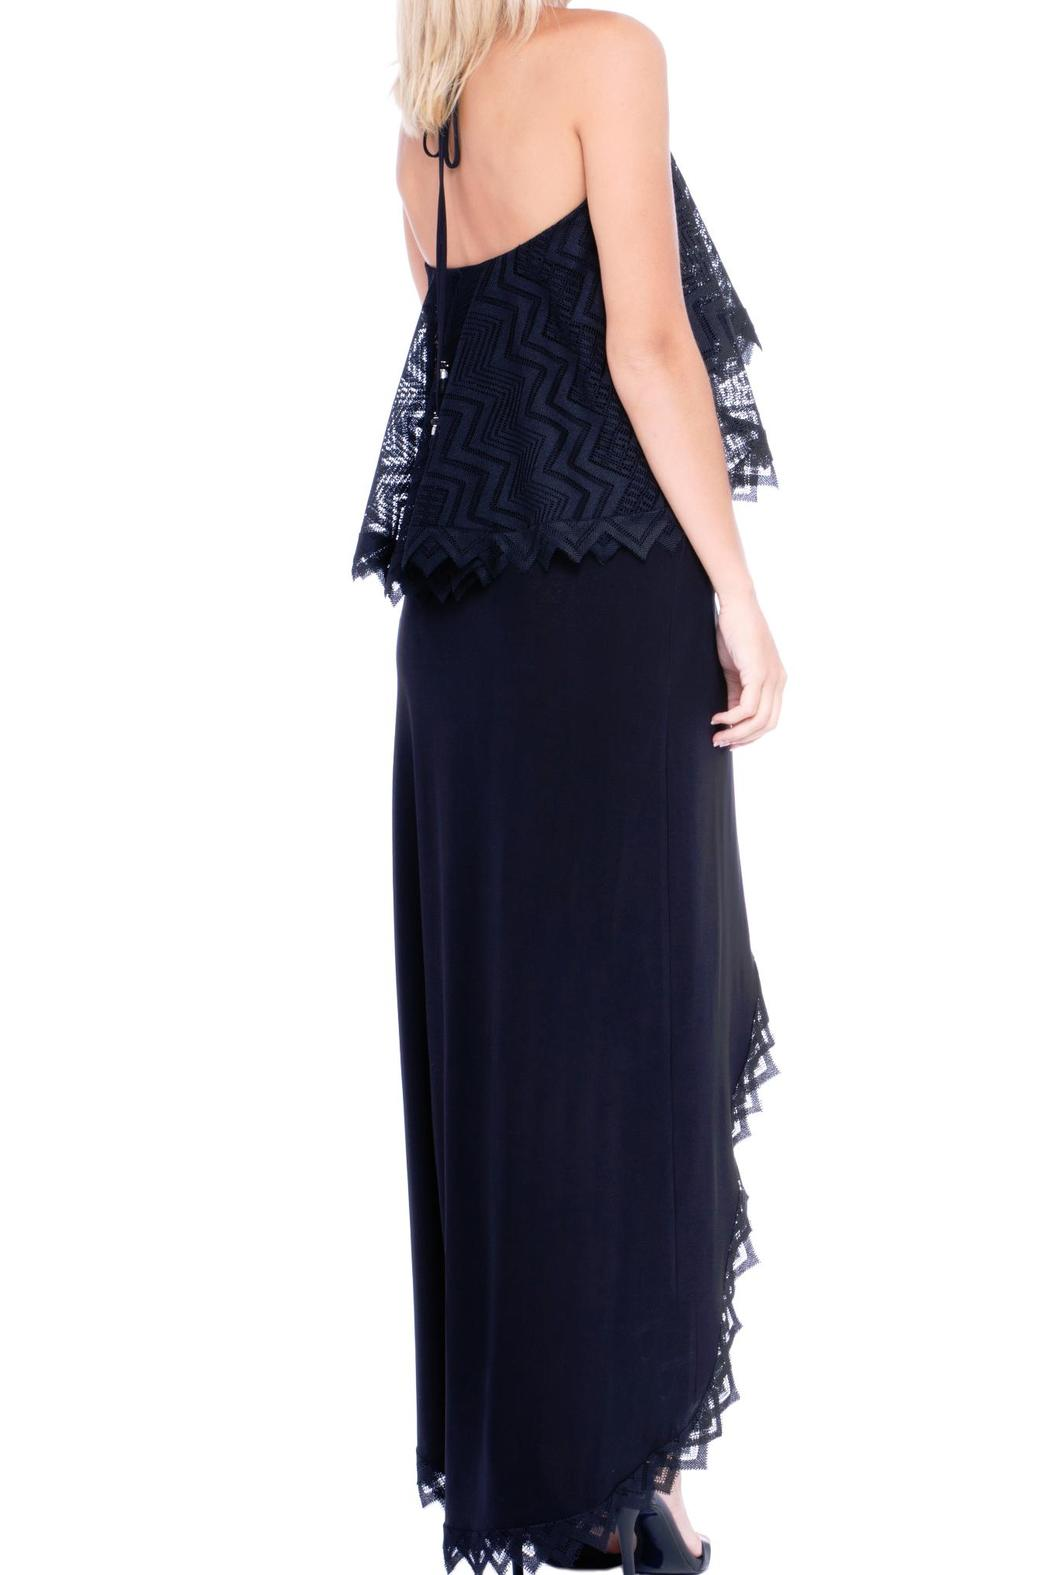 Analili Black Lace Dress - Front Full Image